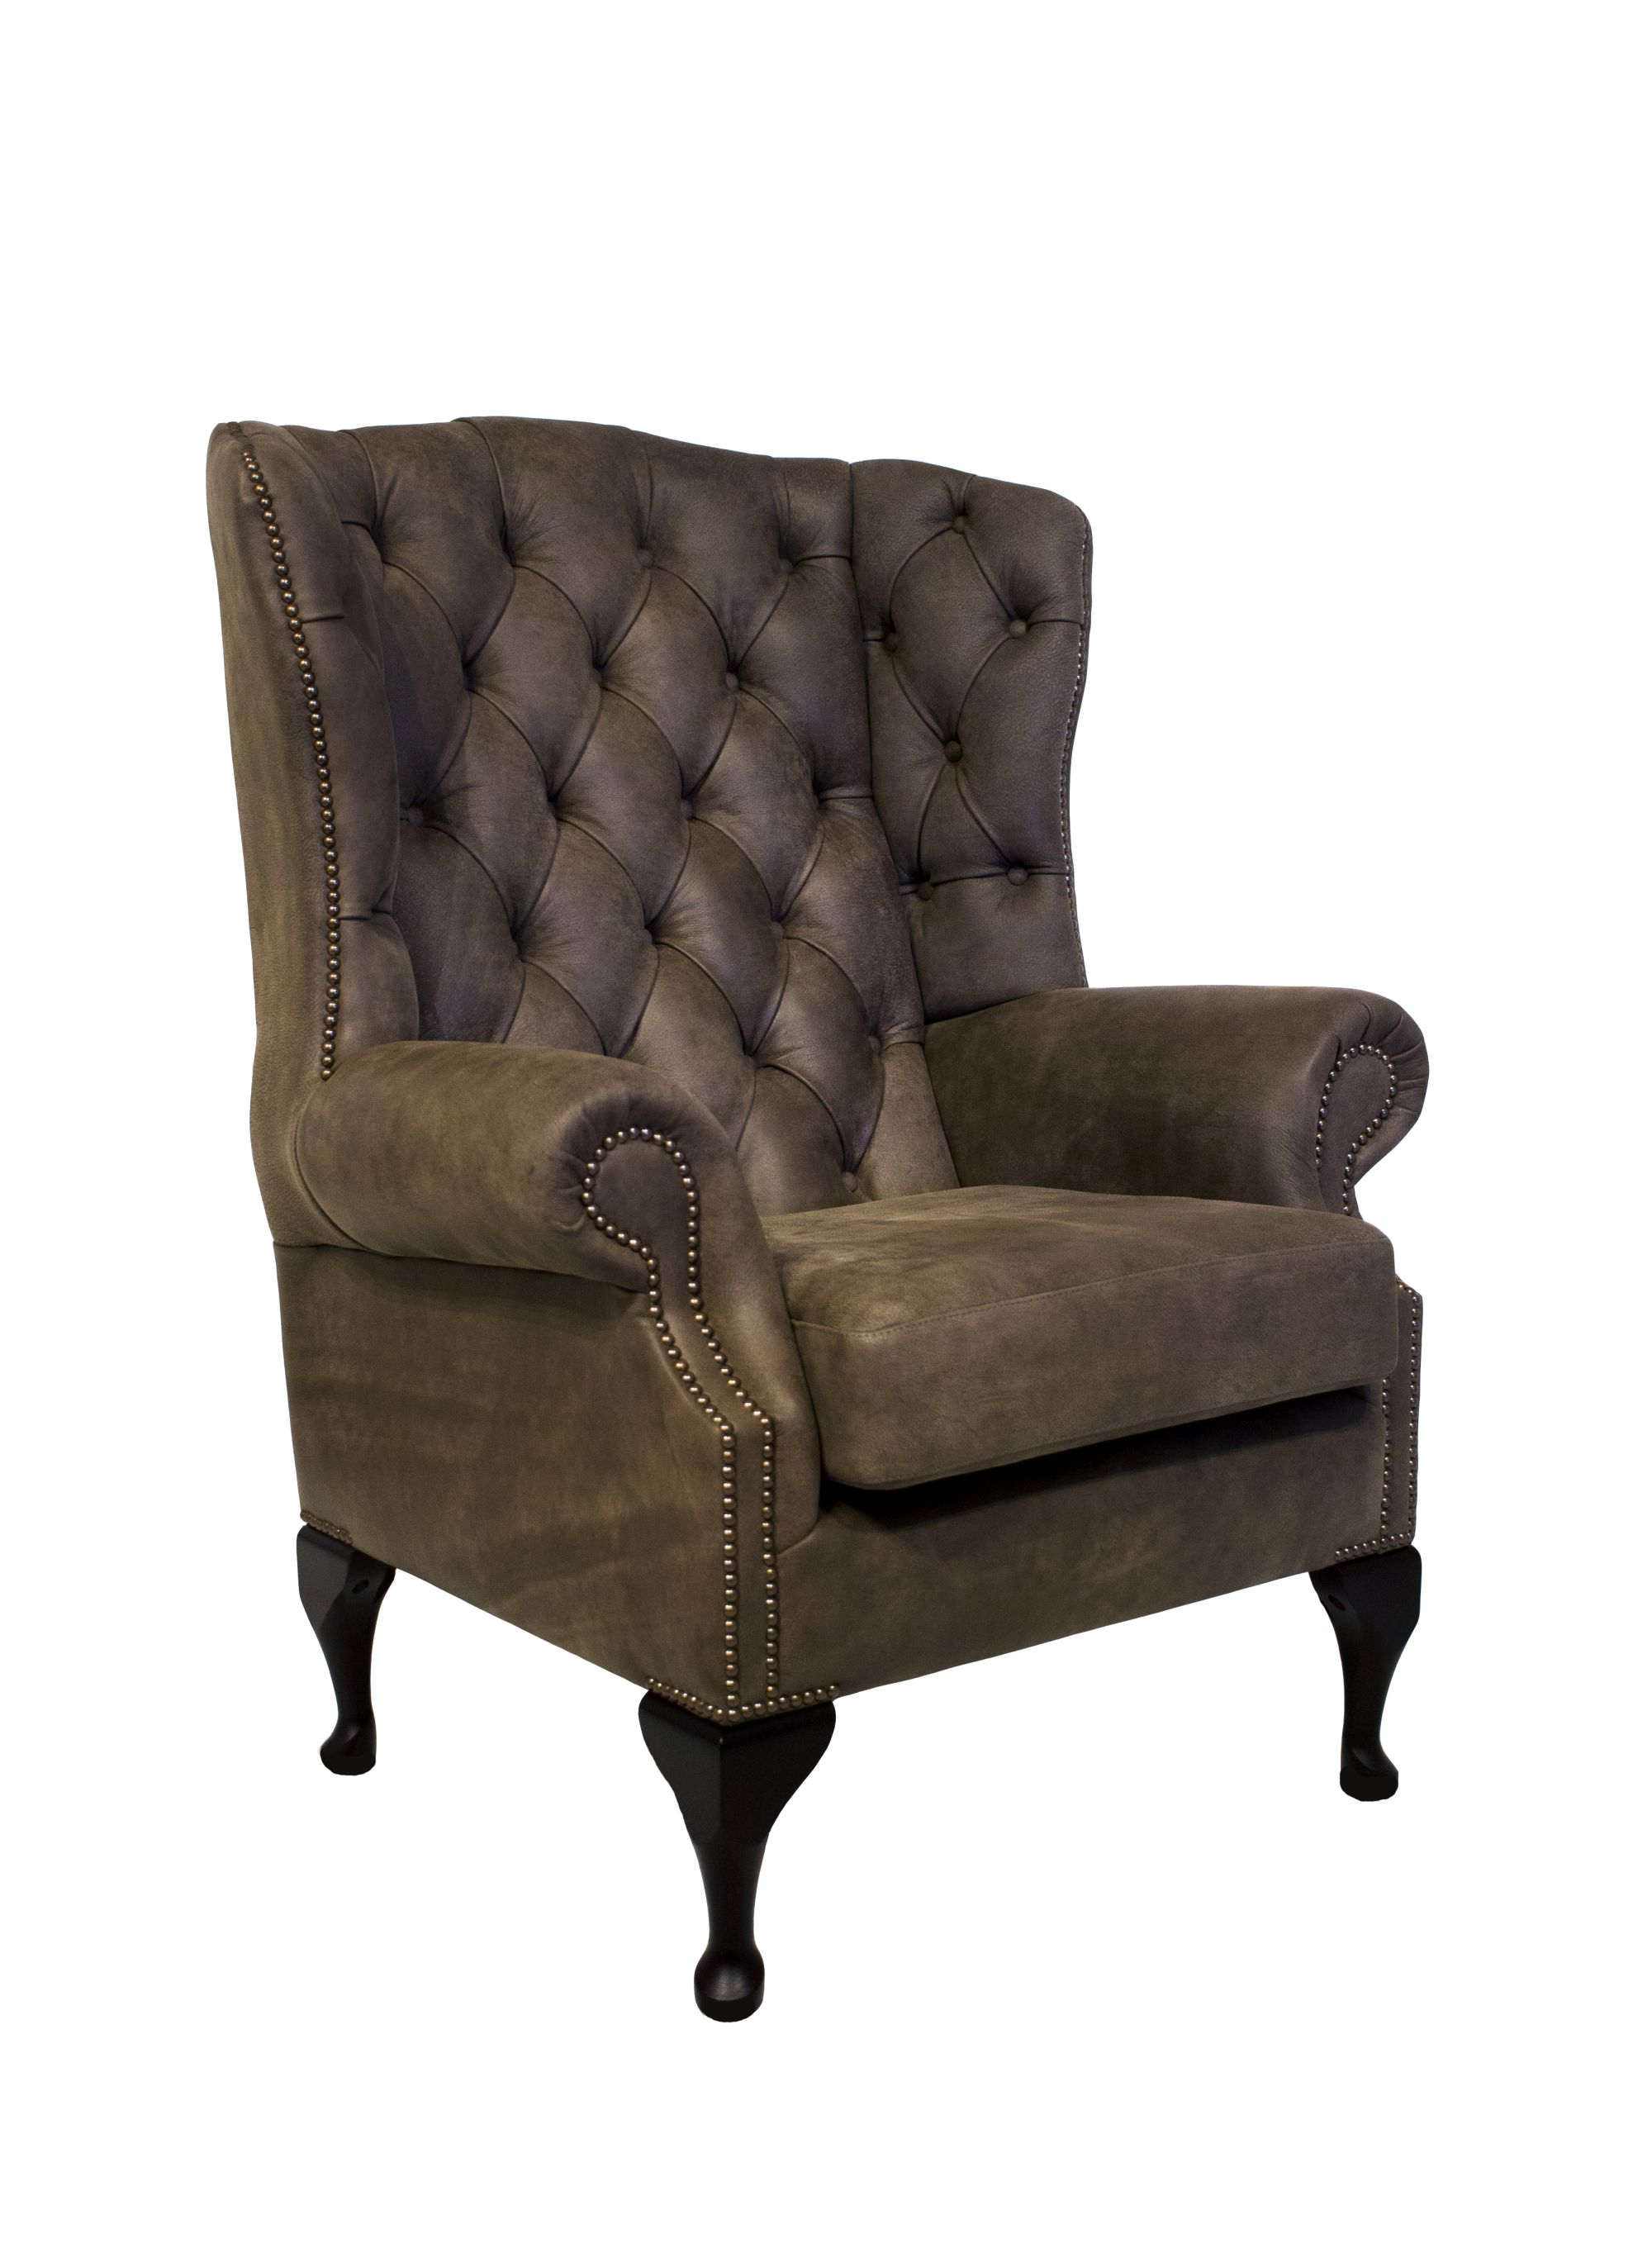 LORD II BIG WINGCHAIR